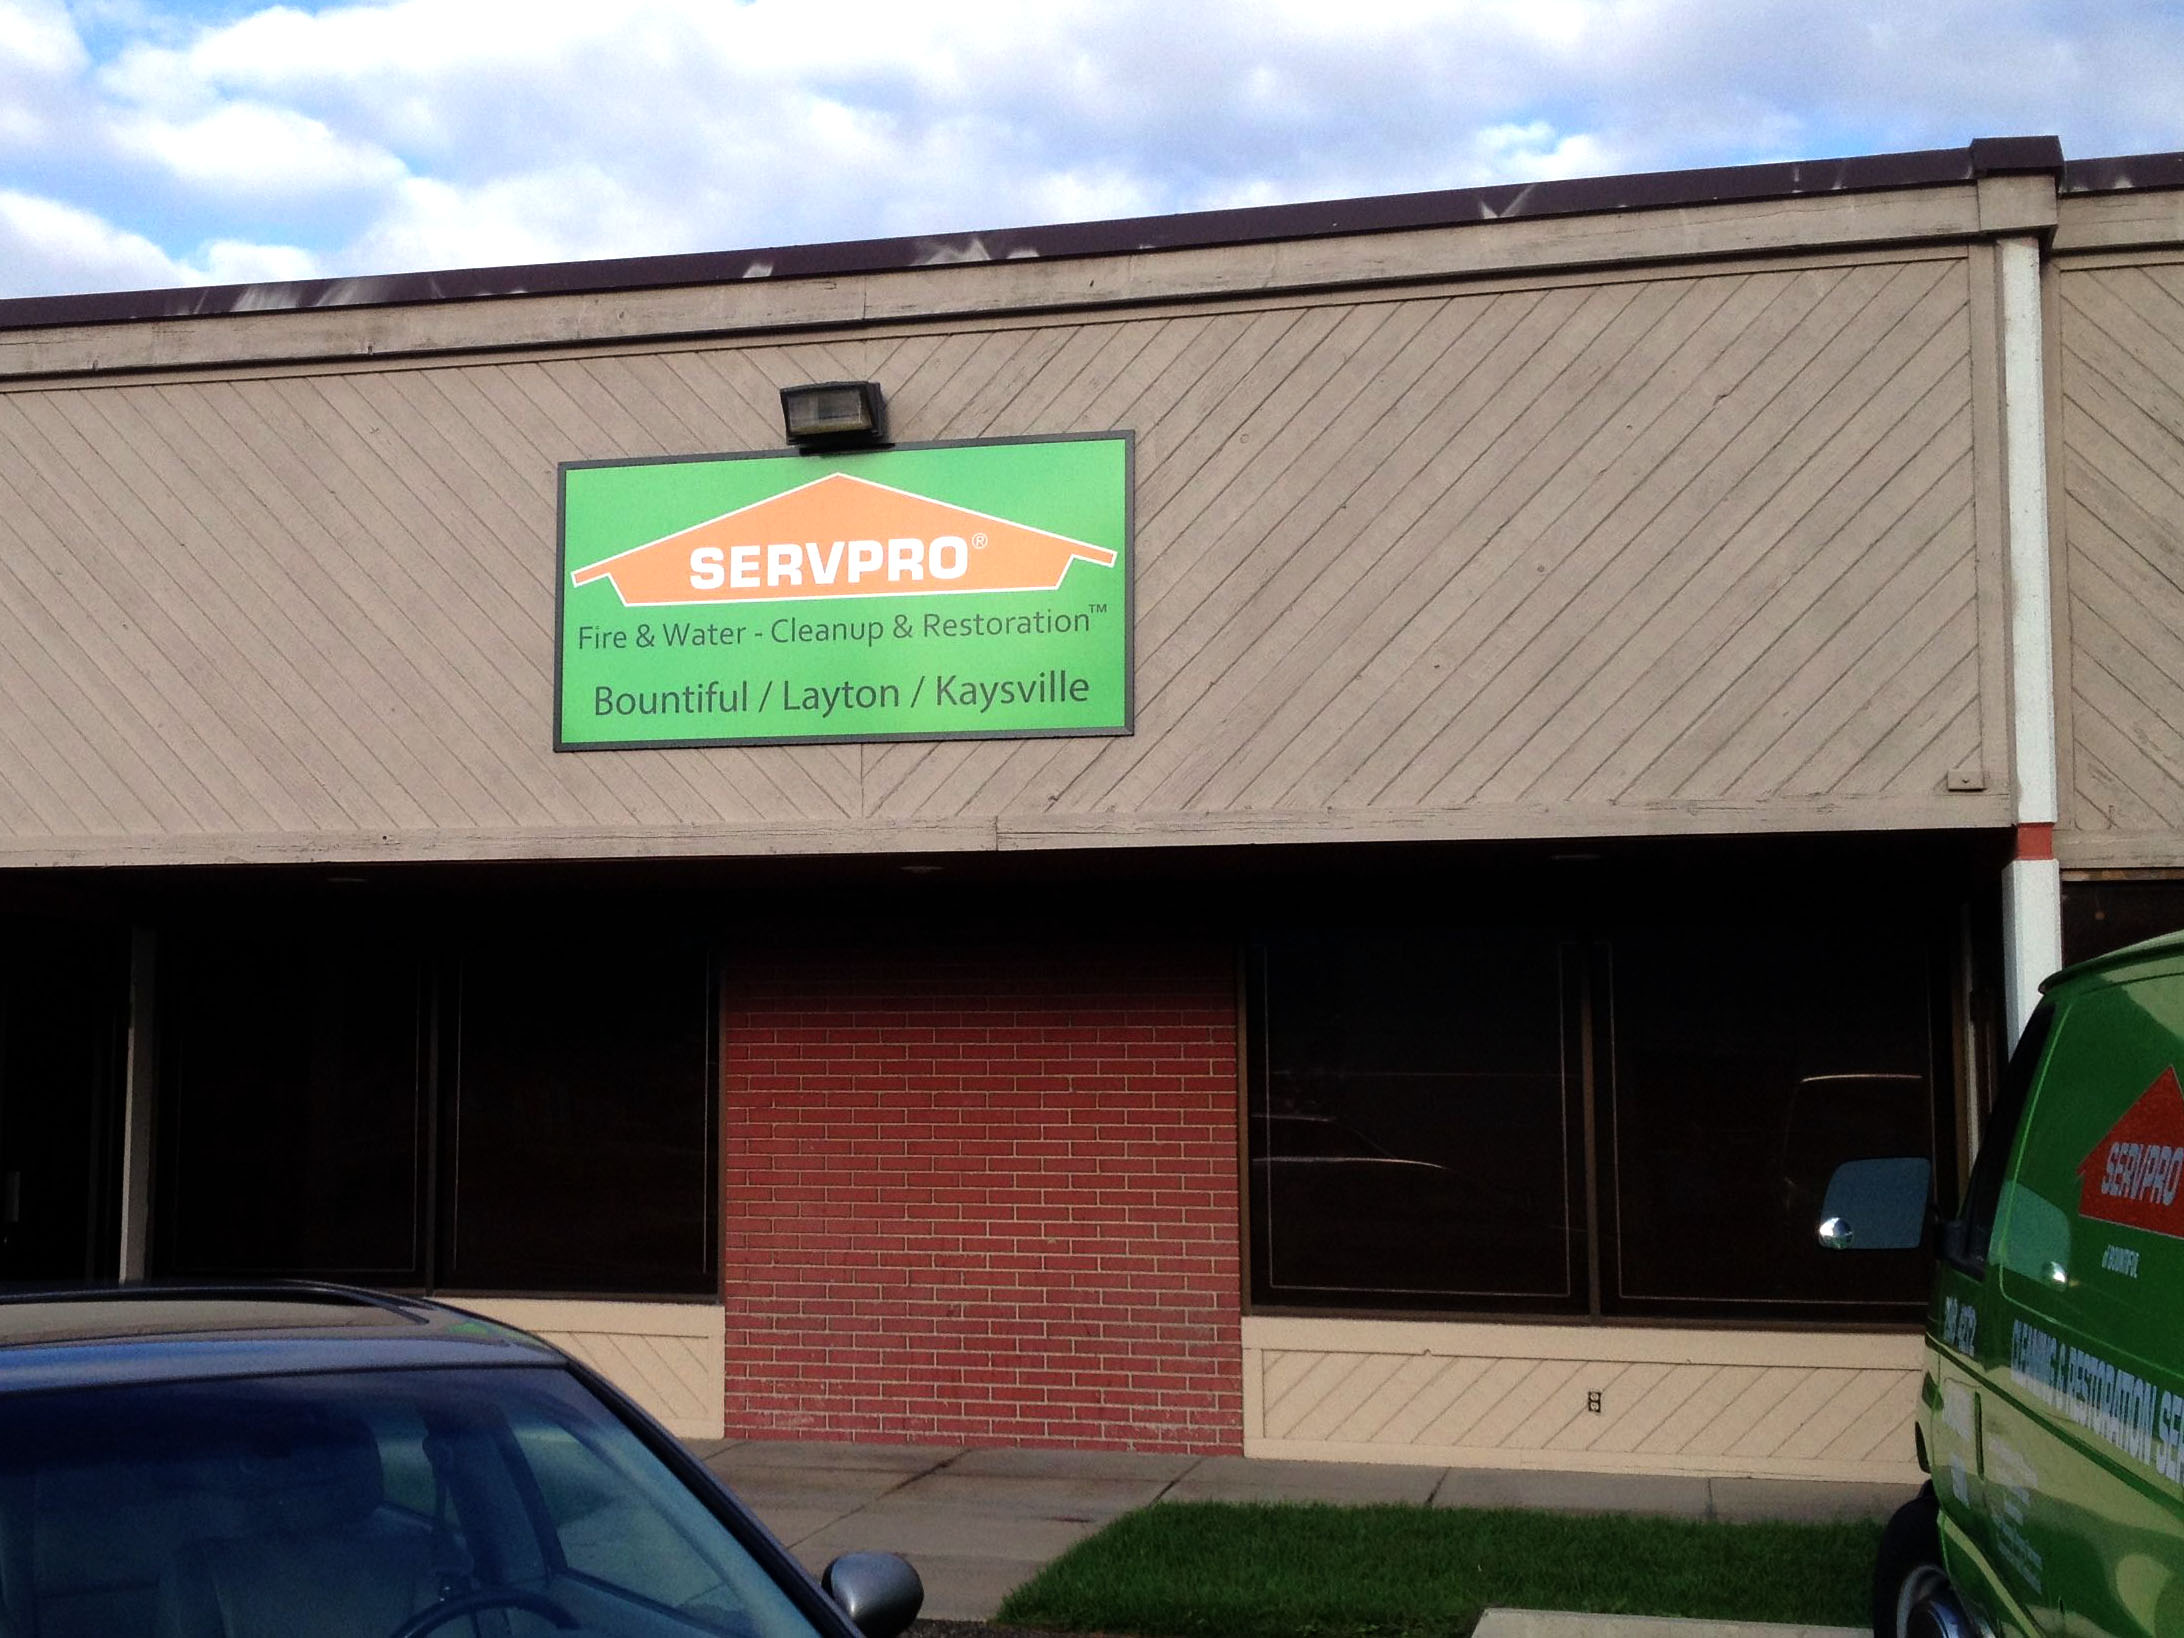 Servpro of Bountiful